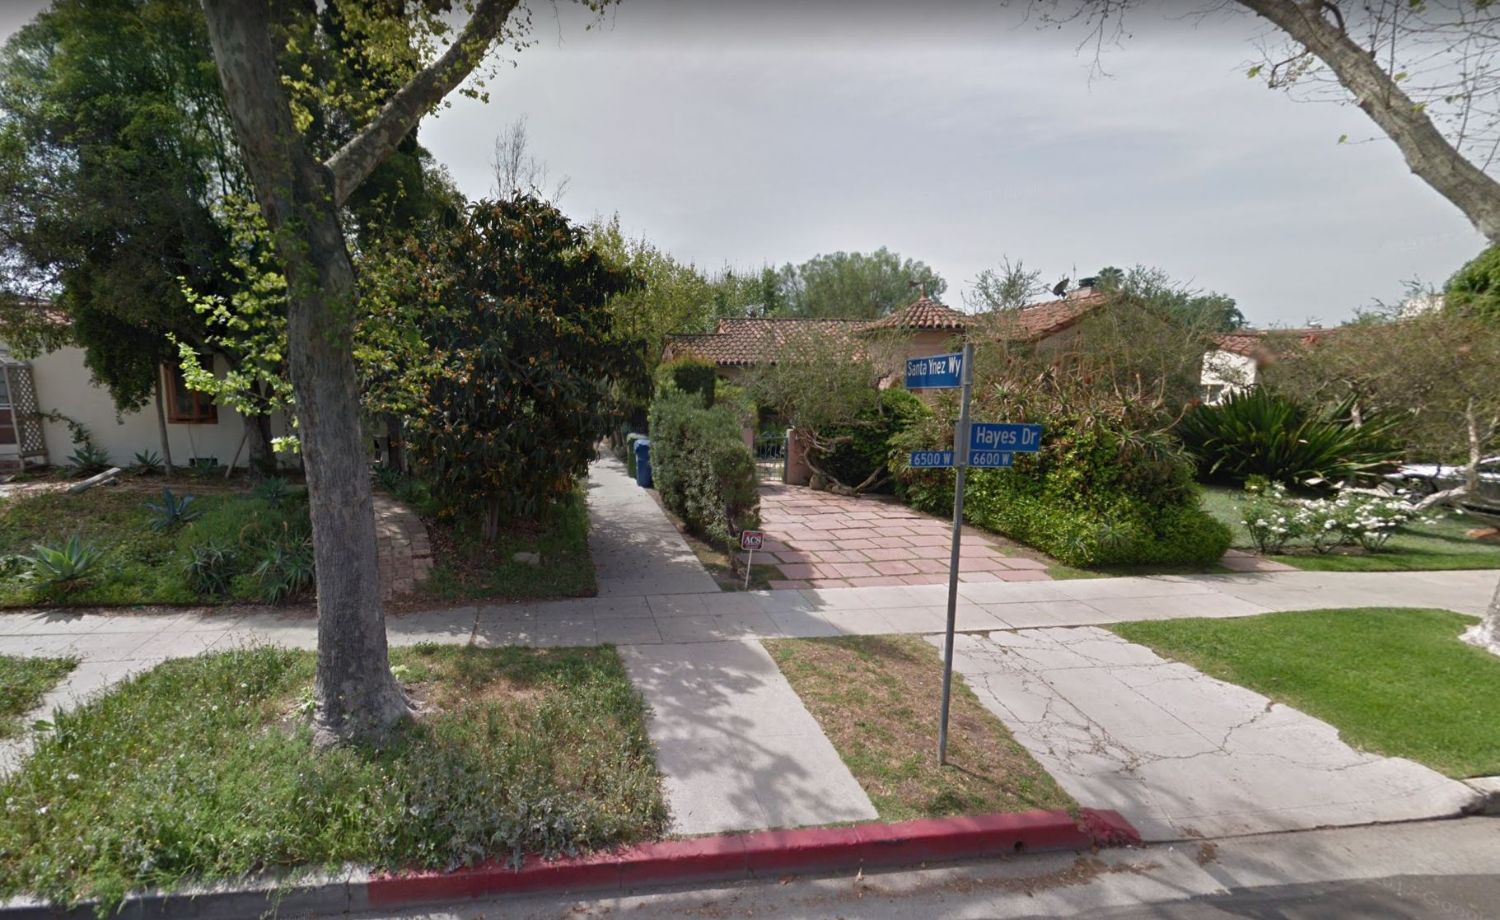 cd50a64a92d Santa Ynez Way is one of six walk streets within the Carthay Circle HPOZ  that run north to south from Wilshire to Olympic Blvd. The pedestrian  experience ...